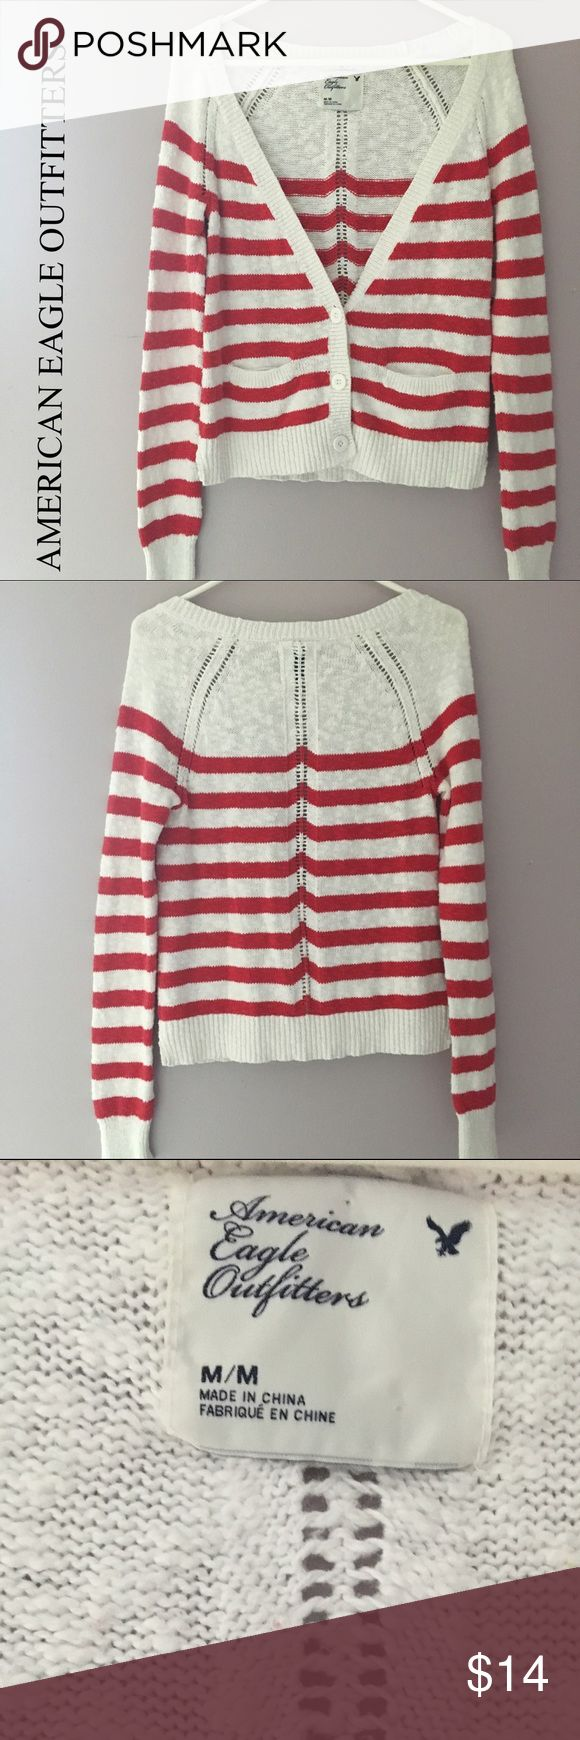 """AEO nautical cardigan American Eagle Outfitters nautical striped cardi, size M. 100% cotton, 24"""" long, 17"""" pit to pit. Pair with shorts or capris & flips! Excellent condition, smoke free home! American Eagle Outfitters Sweaters Cardigans"""